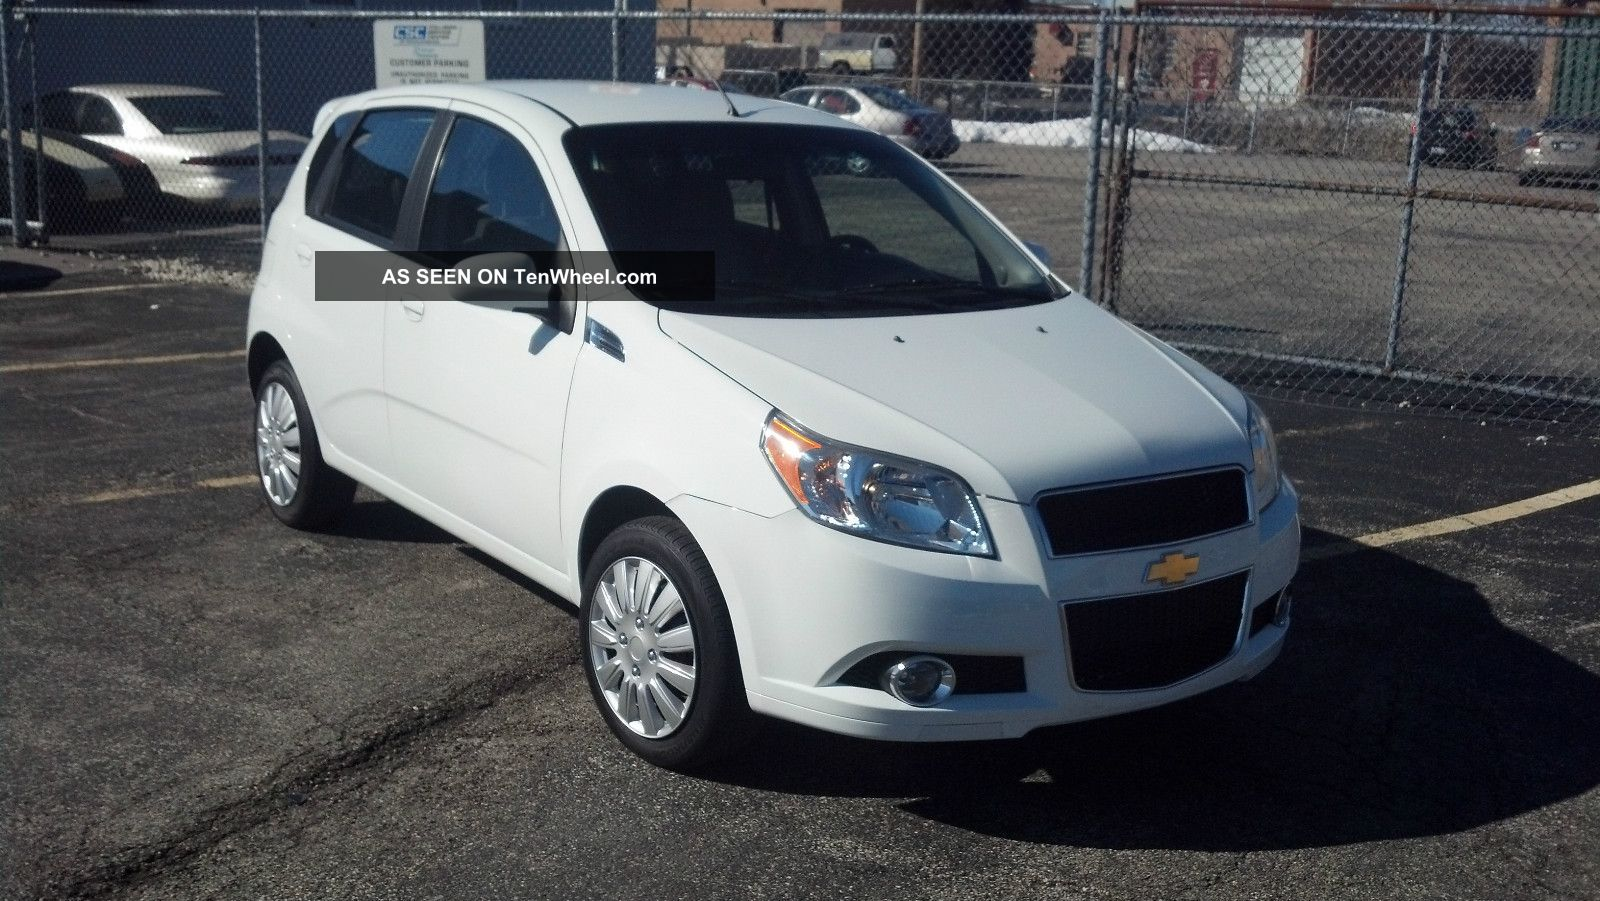 2011 chevrolet aveo chevrolet aveo hatchback. Black Bedroom Furniture Sets. Home Design Ideas